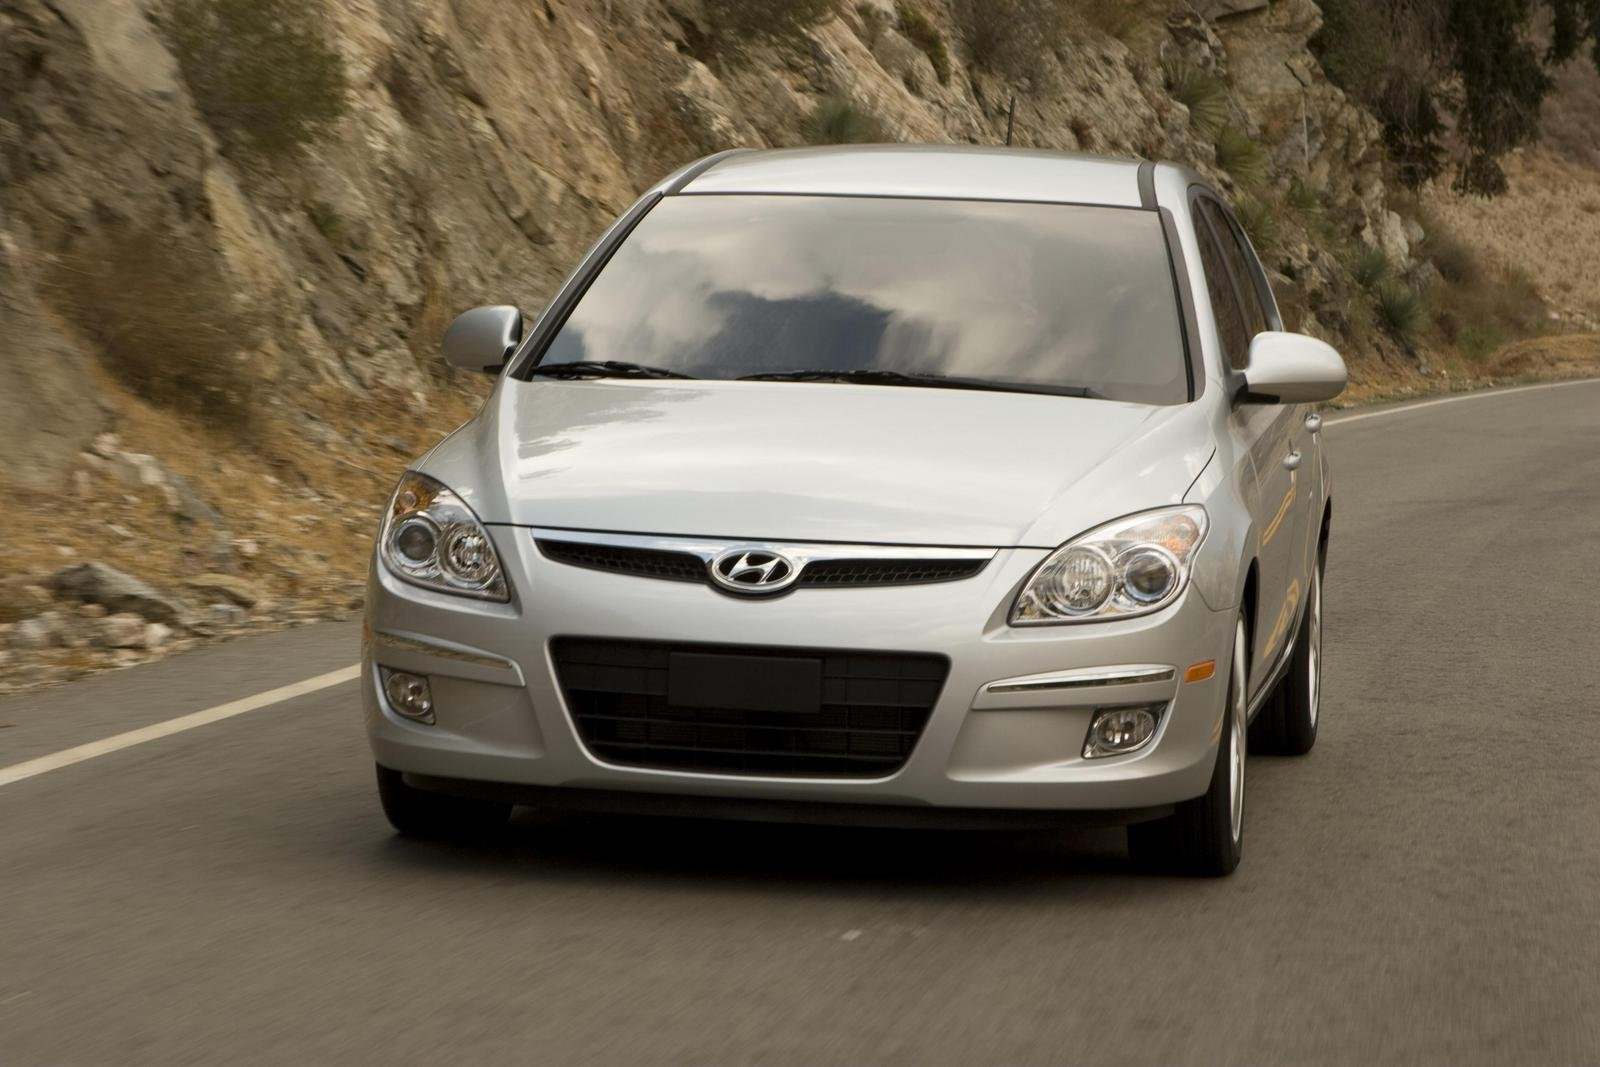 2009 hyundai elantra touring picture 230725 car review. Black Bedroom Furniture Sets. Home Design Ideas